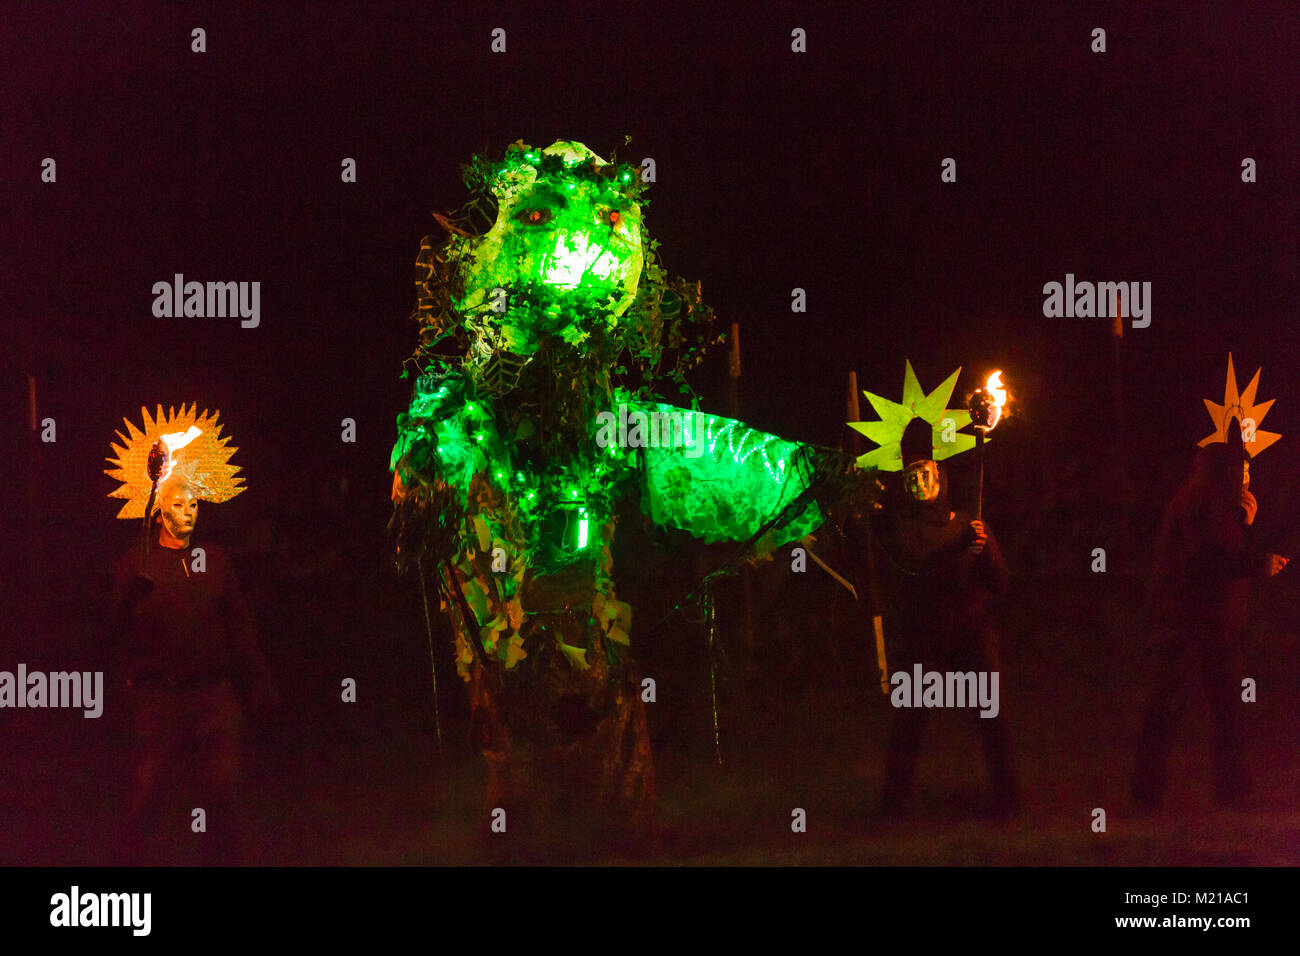 Marsden, UK. 03rd February, 2018. The Green Man is led away after defeating Jack Frost at the  Imbolc Fire Festival. - Stock Image